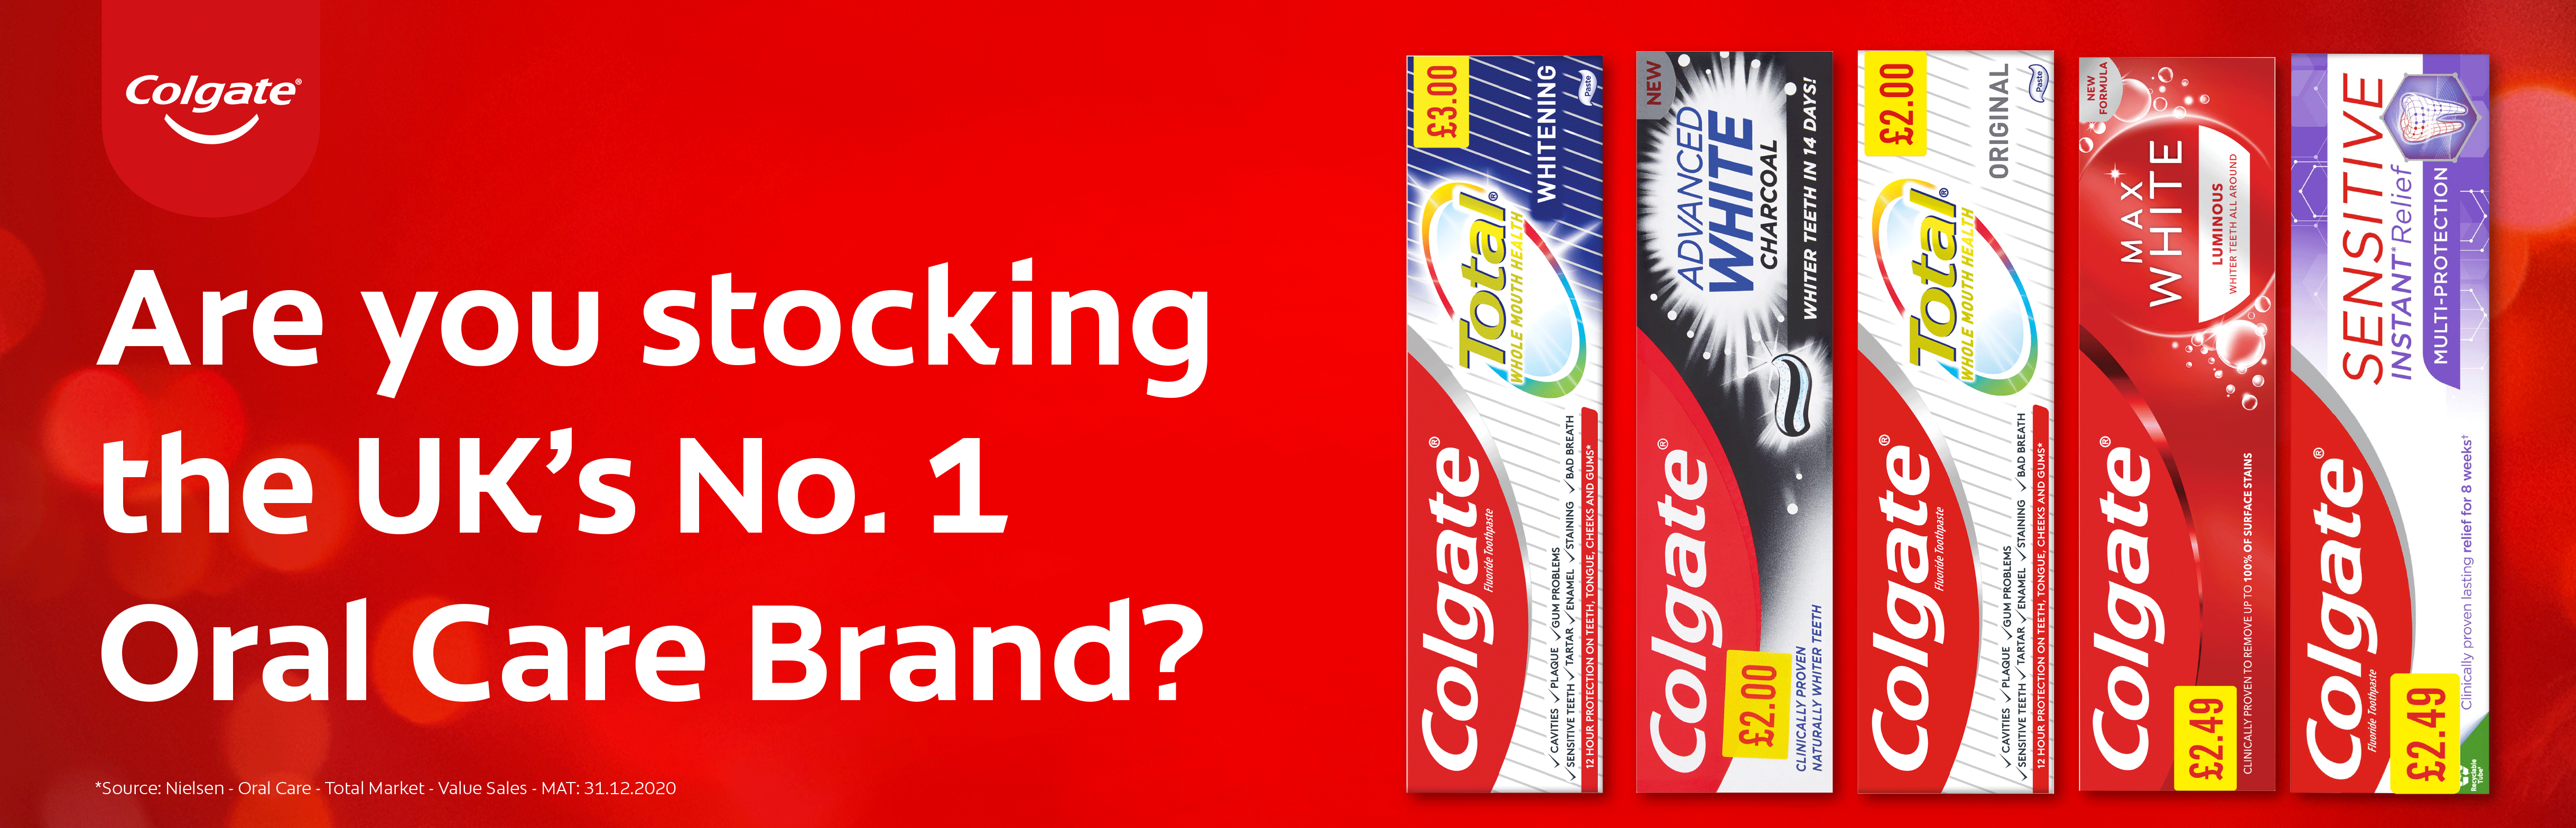 Are you stocking the UK's No.1 oral care brand?